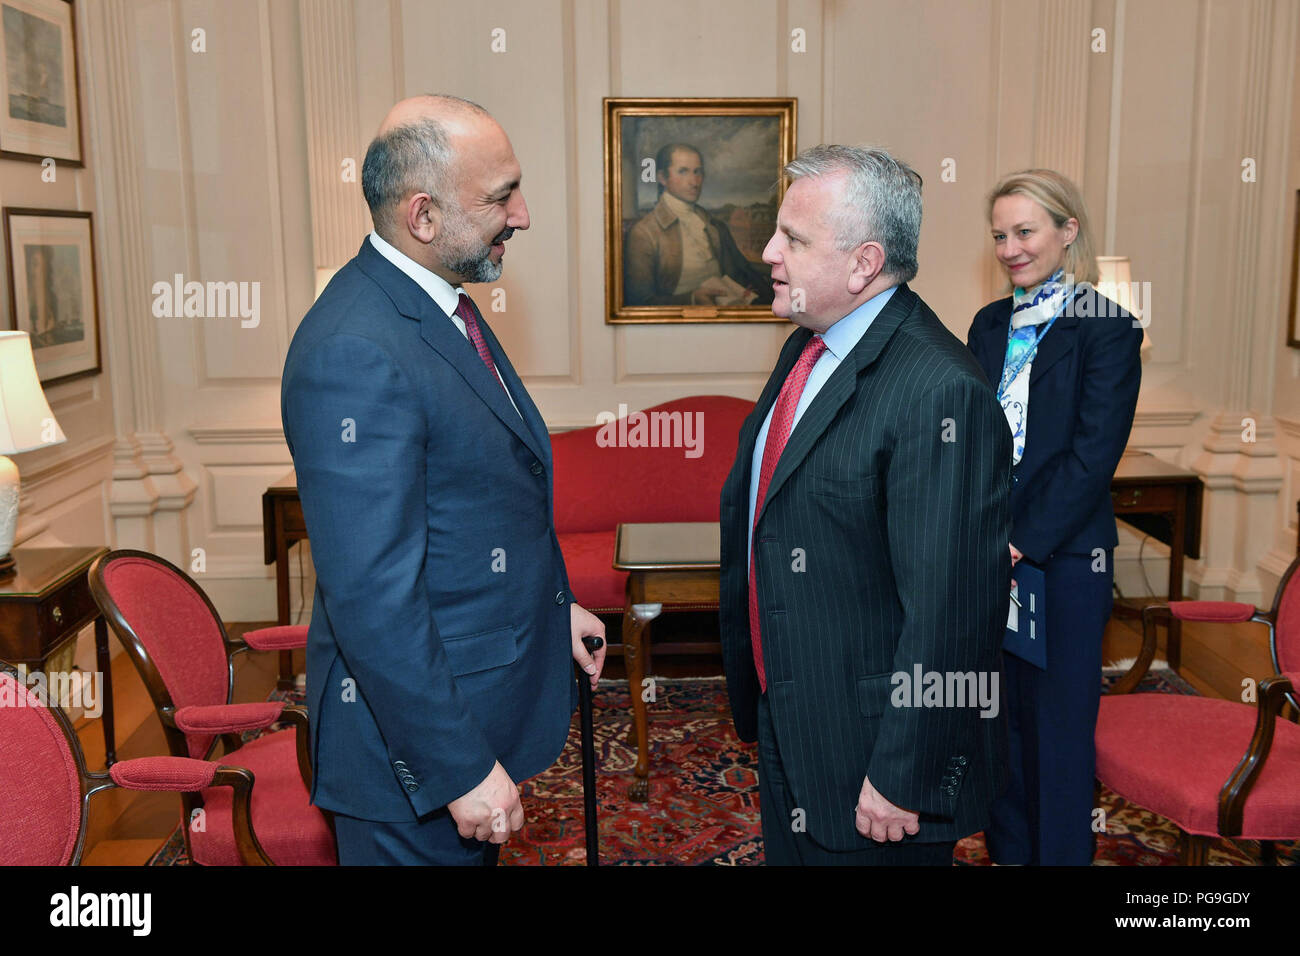 Deputy Secretary of State John Sullivan, joined by Principal Deputy Assistant Secretary of State for South and Central Asian Affairs Alice G. Wells, meets with Afghan National Security Advisor Mohammad Hanif Atmar, at the Department of State, March 23, 2018. - Stock Image